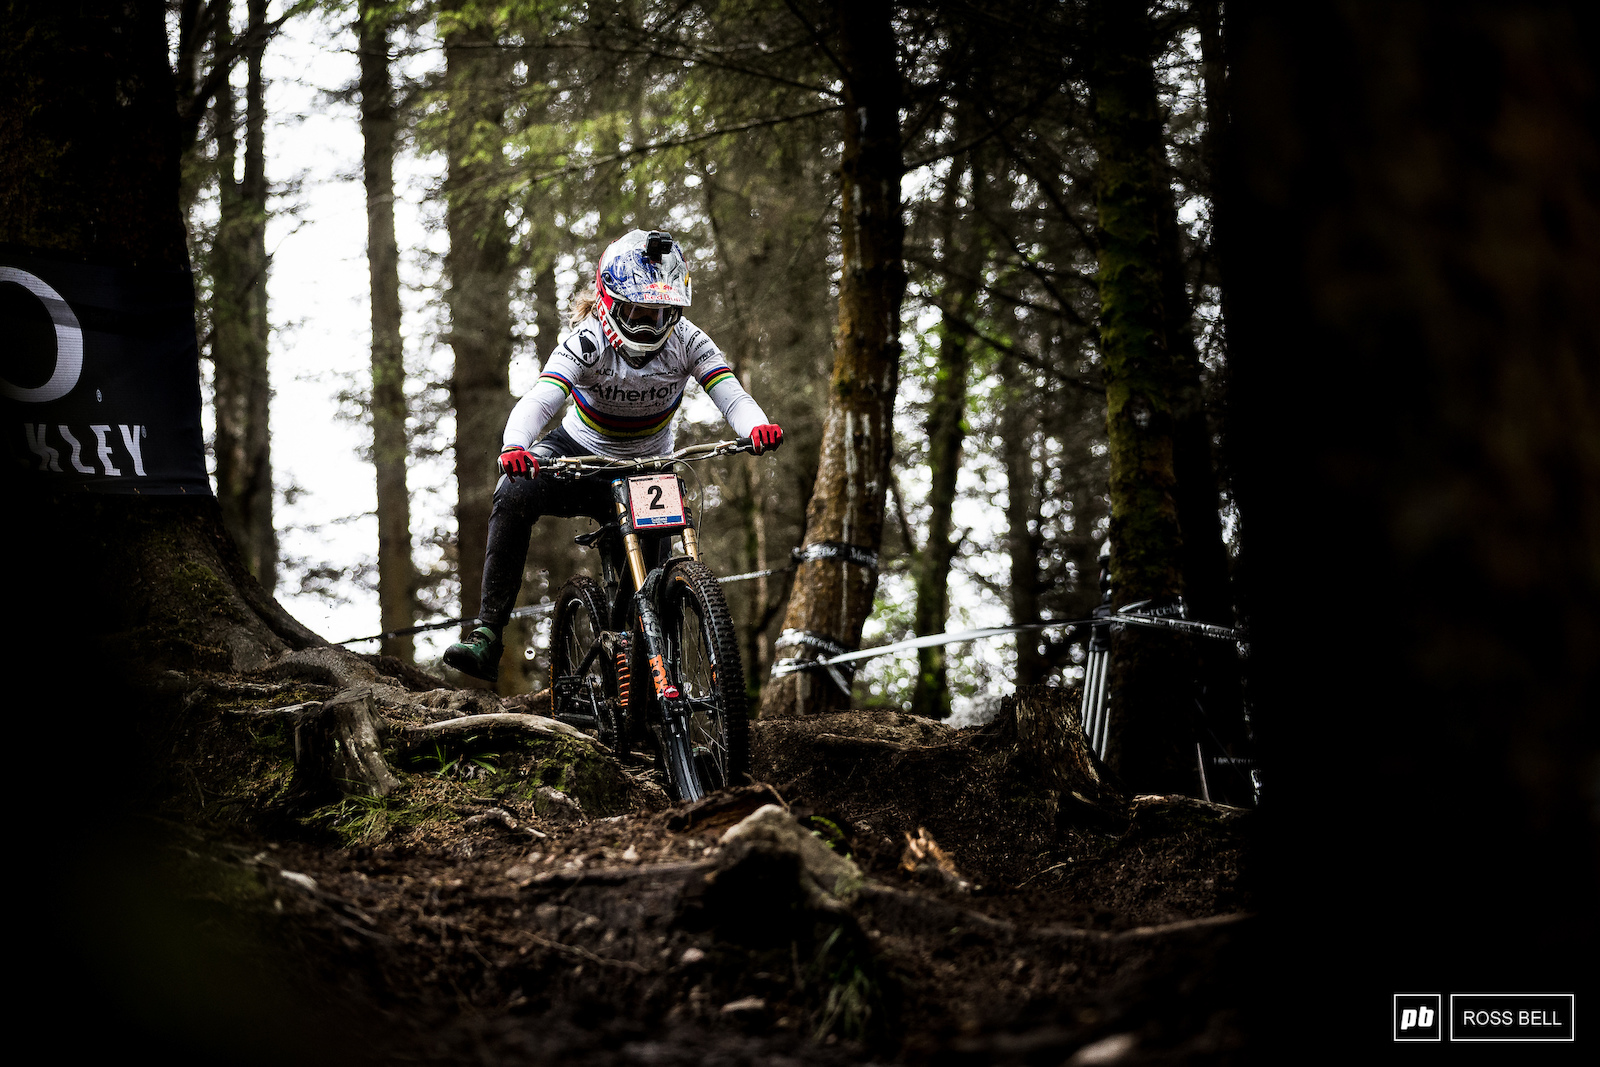 Rachel Atherton had a wild ride on her qualifying run and will be hungry to clean it all up for tomorrow.